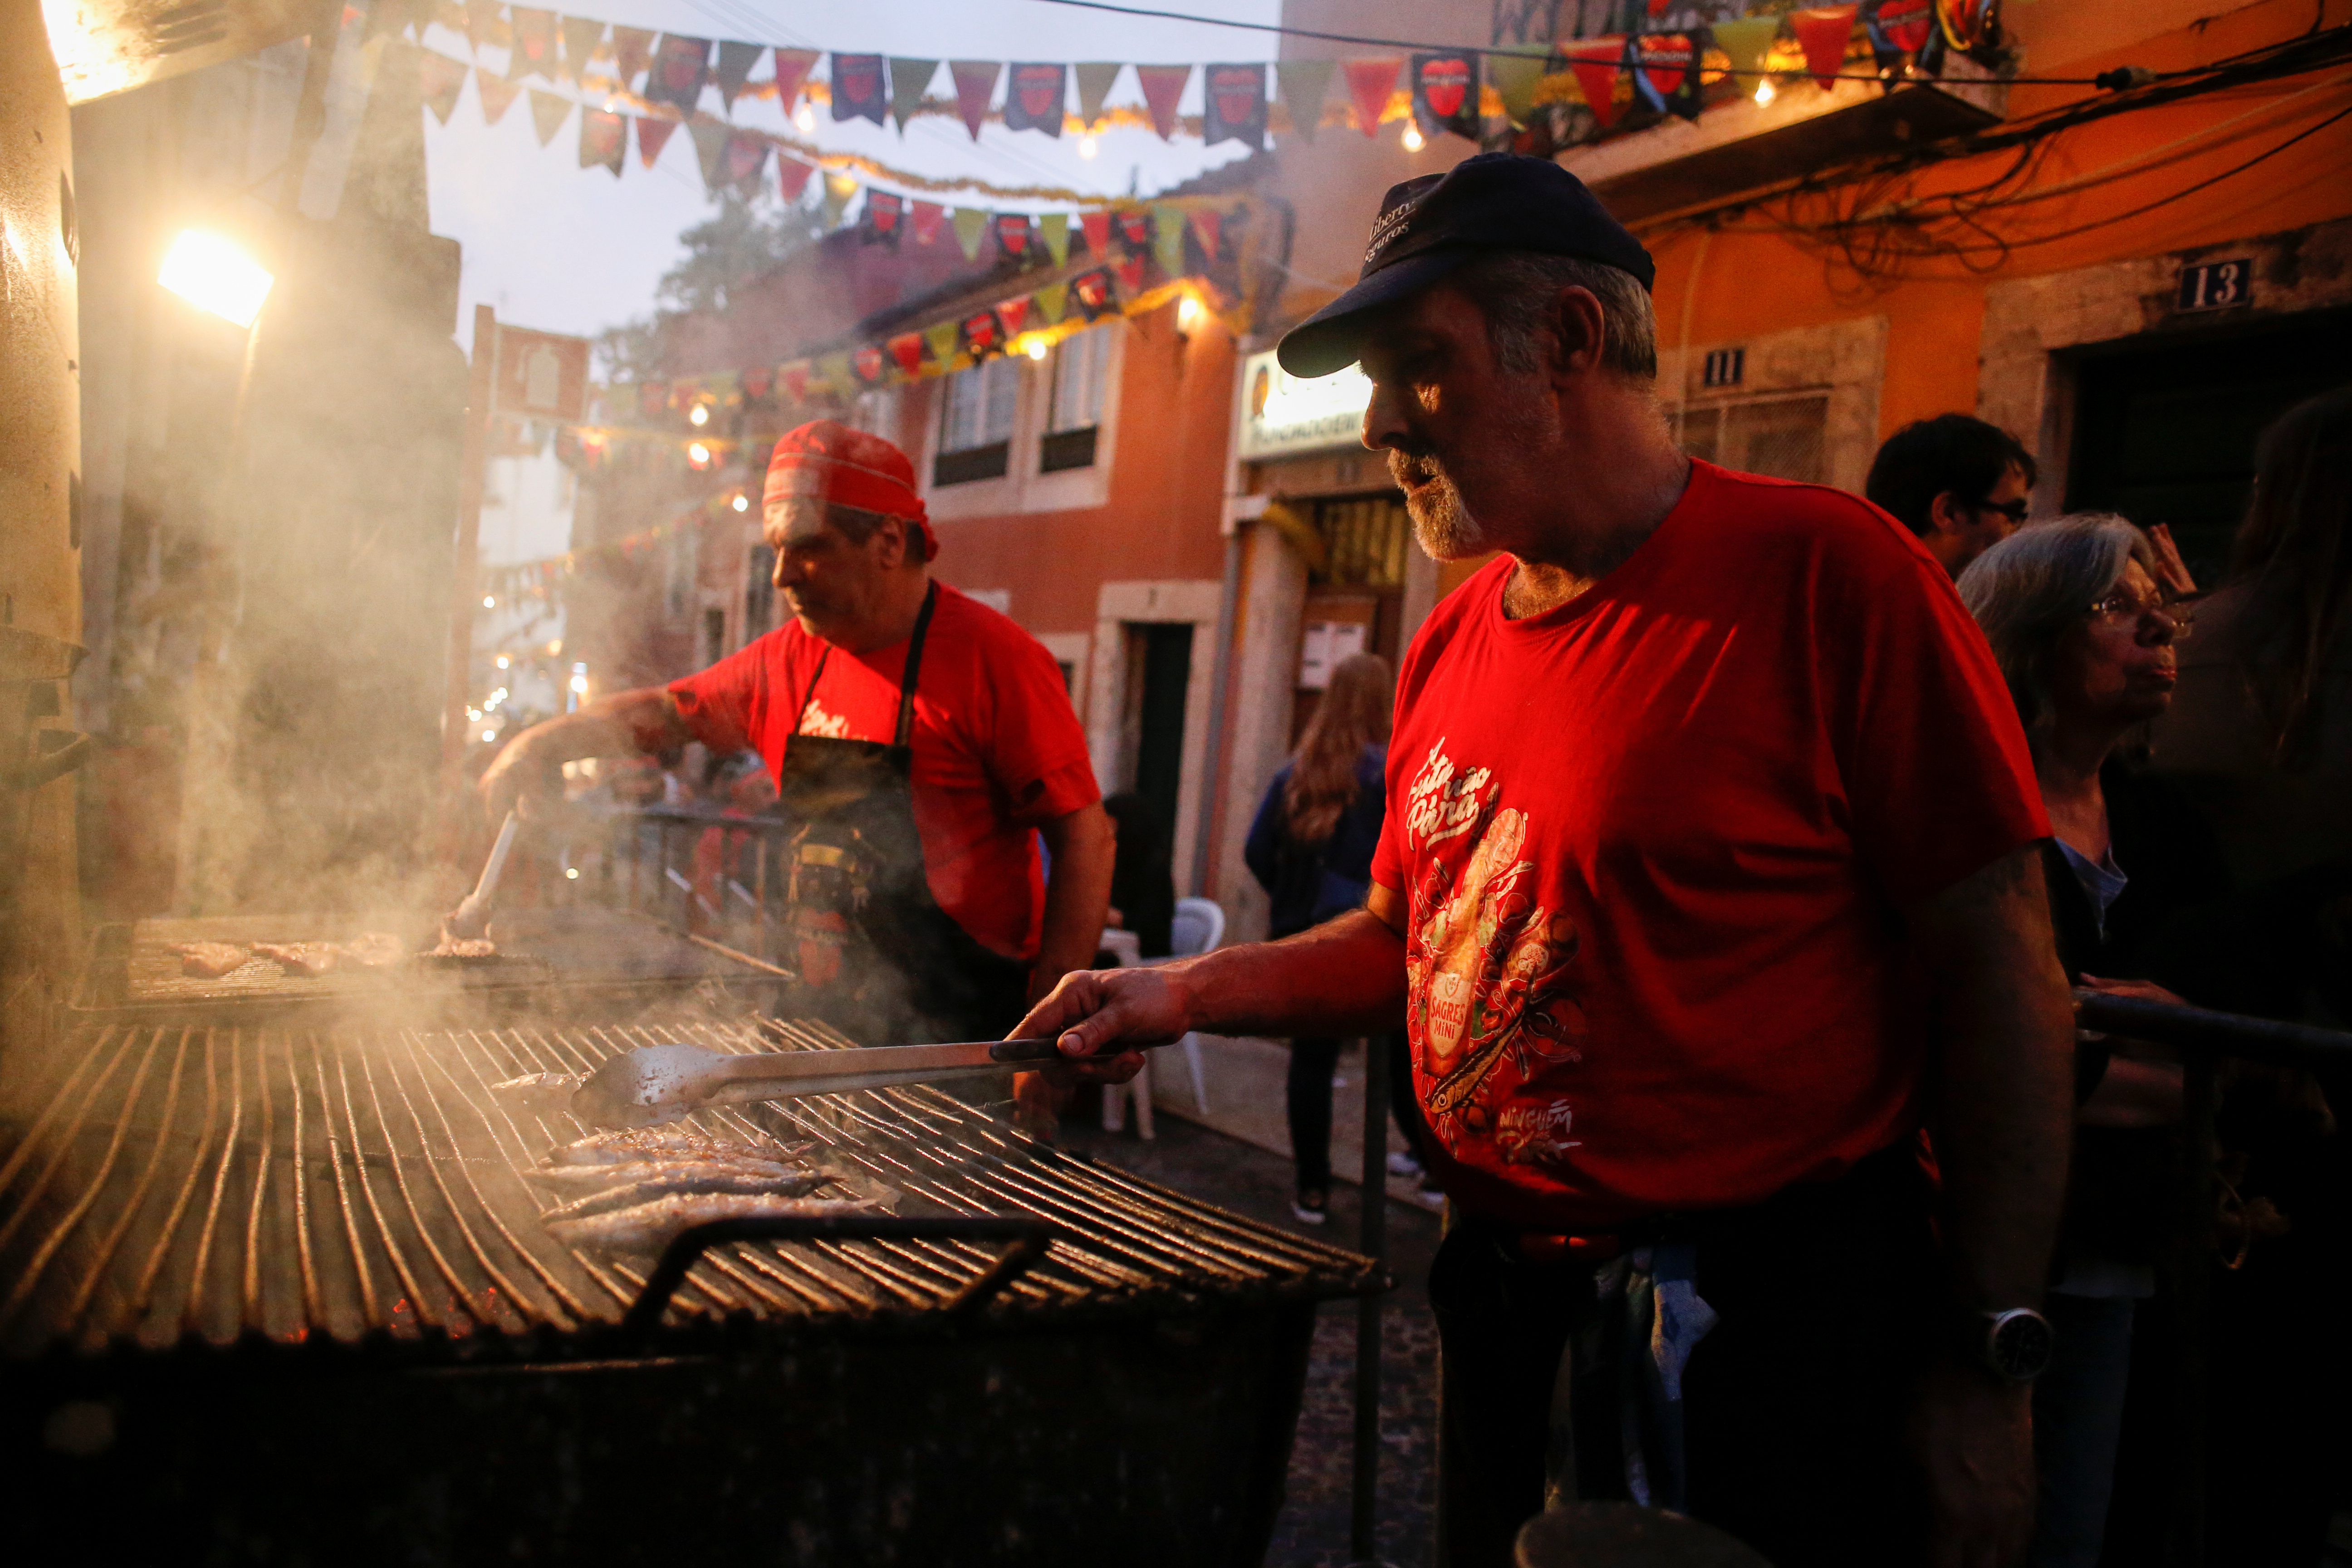 A man grills sardines in the Bica neighborhood in Lisbon, Portugal, June 14, 2018.